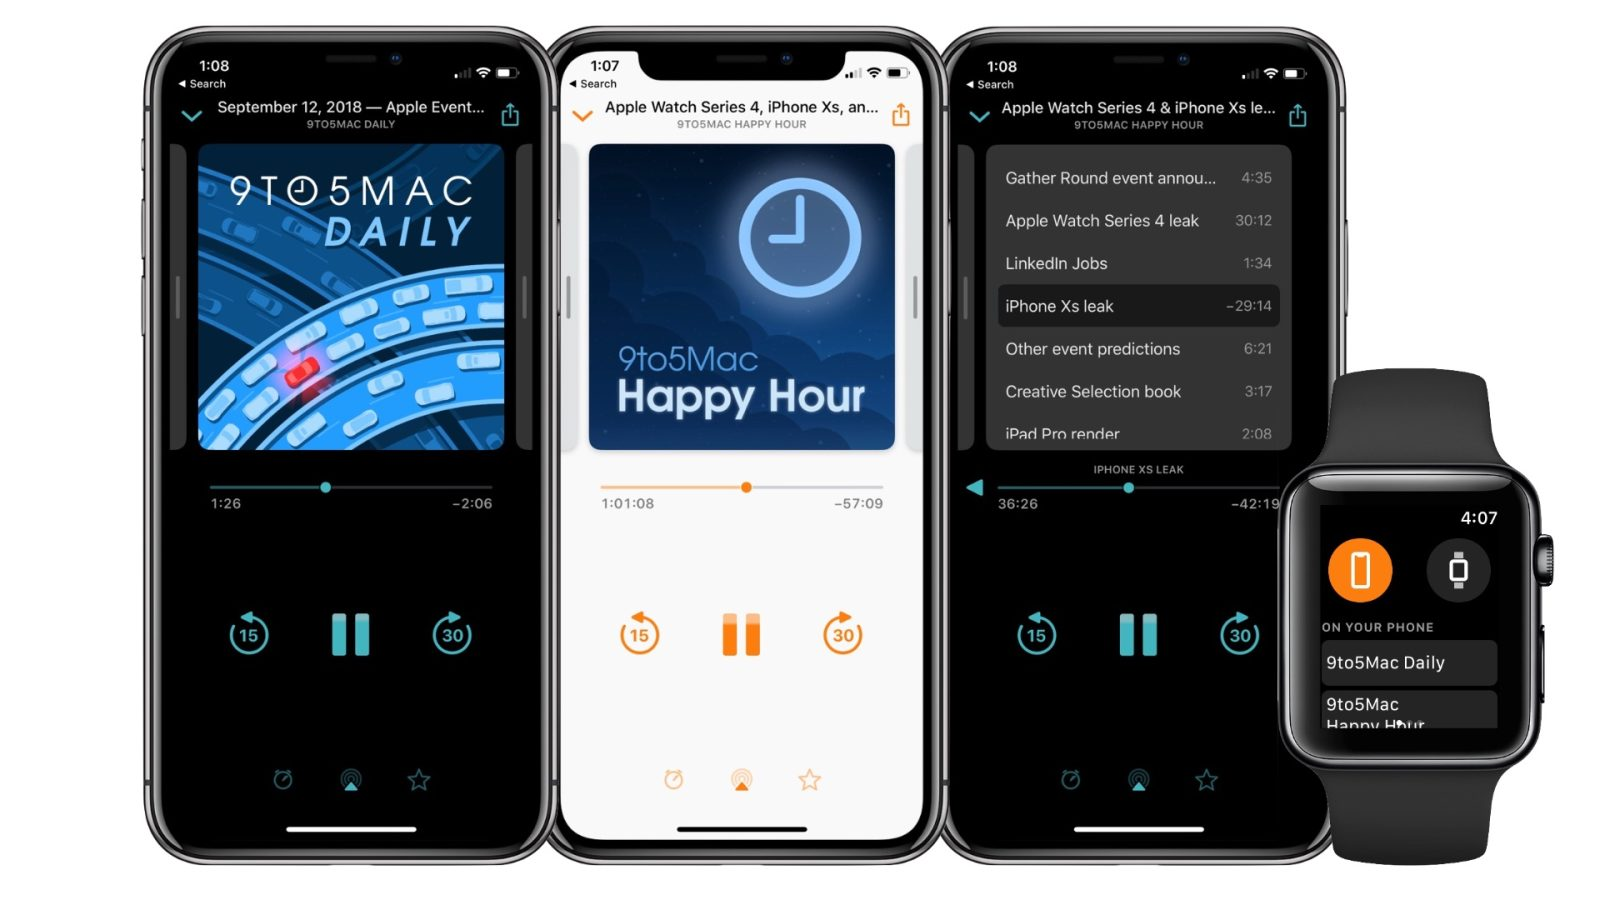 Overcast podcast player launches Voice Boost 2, AirPlay 2 support, more